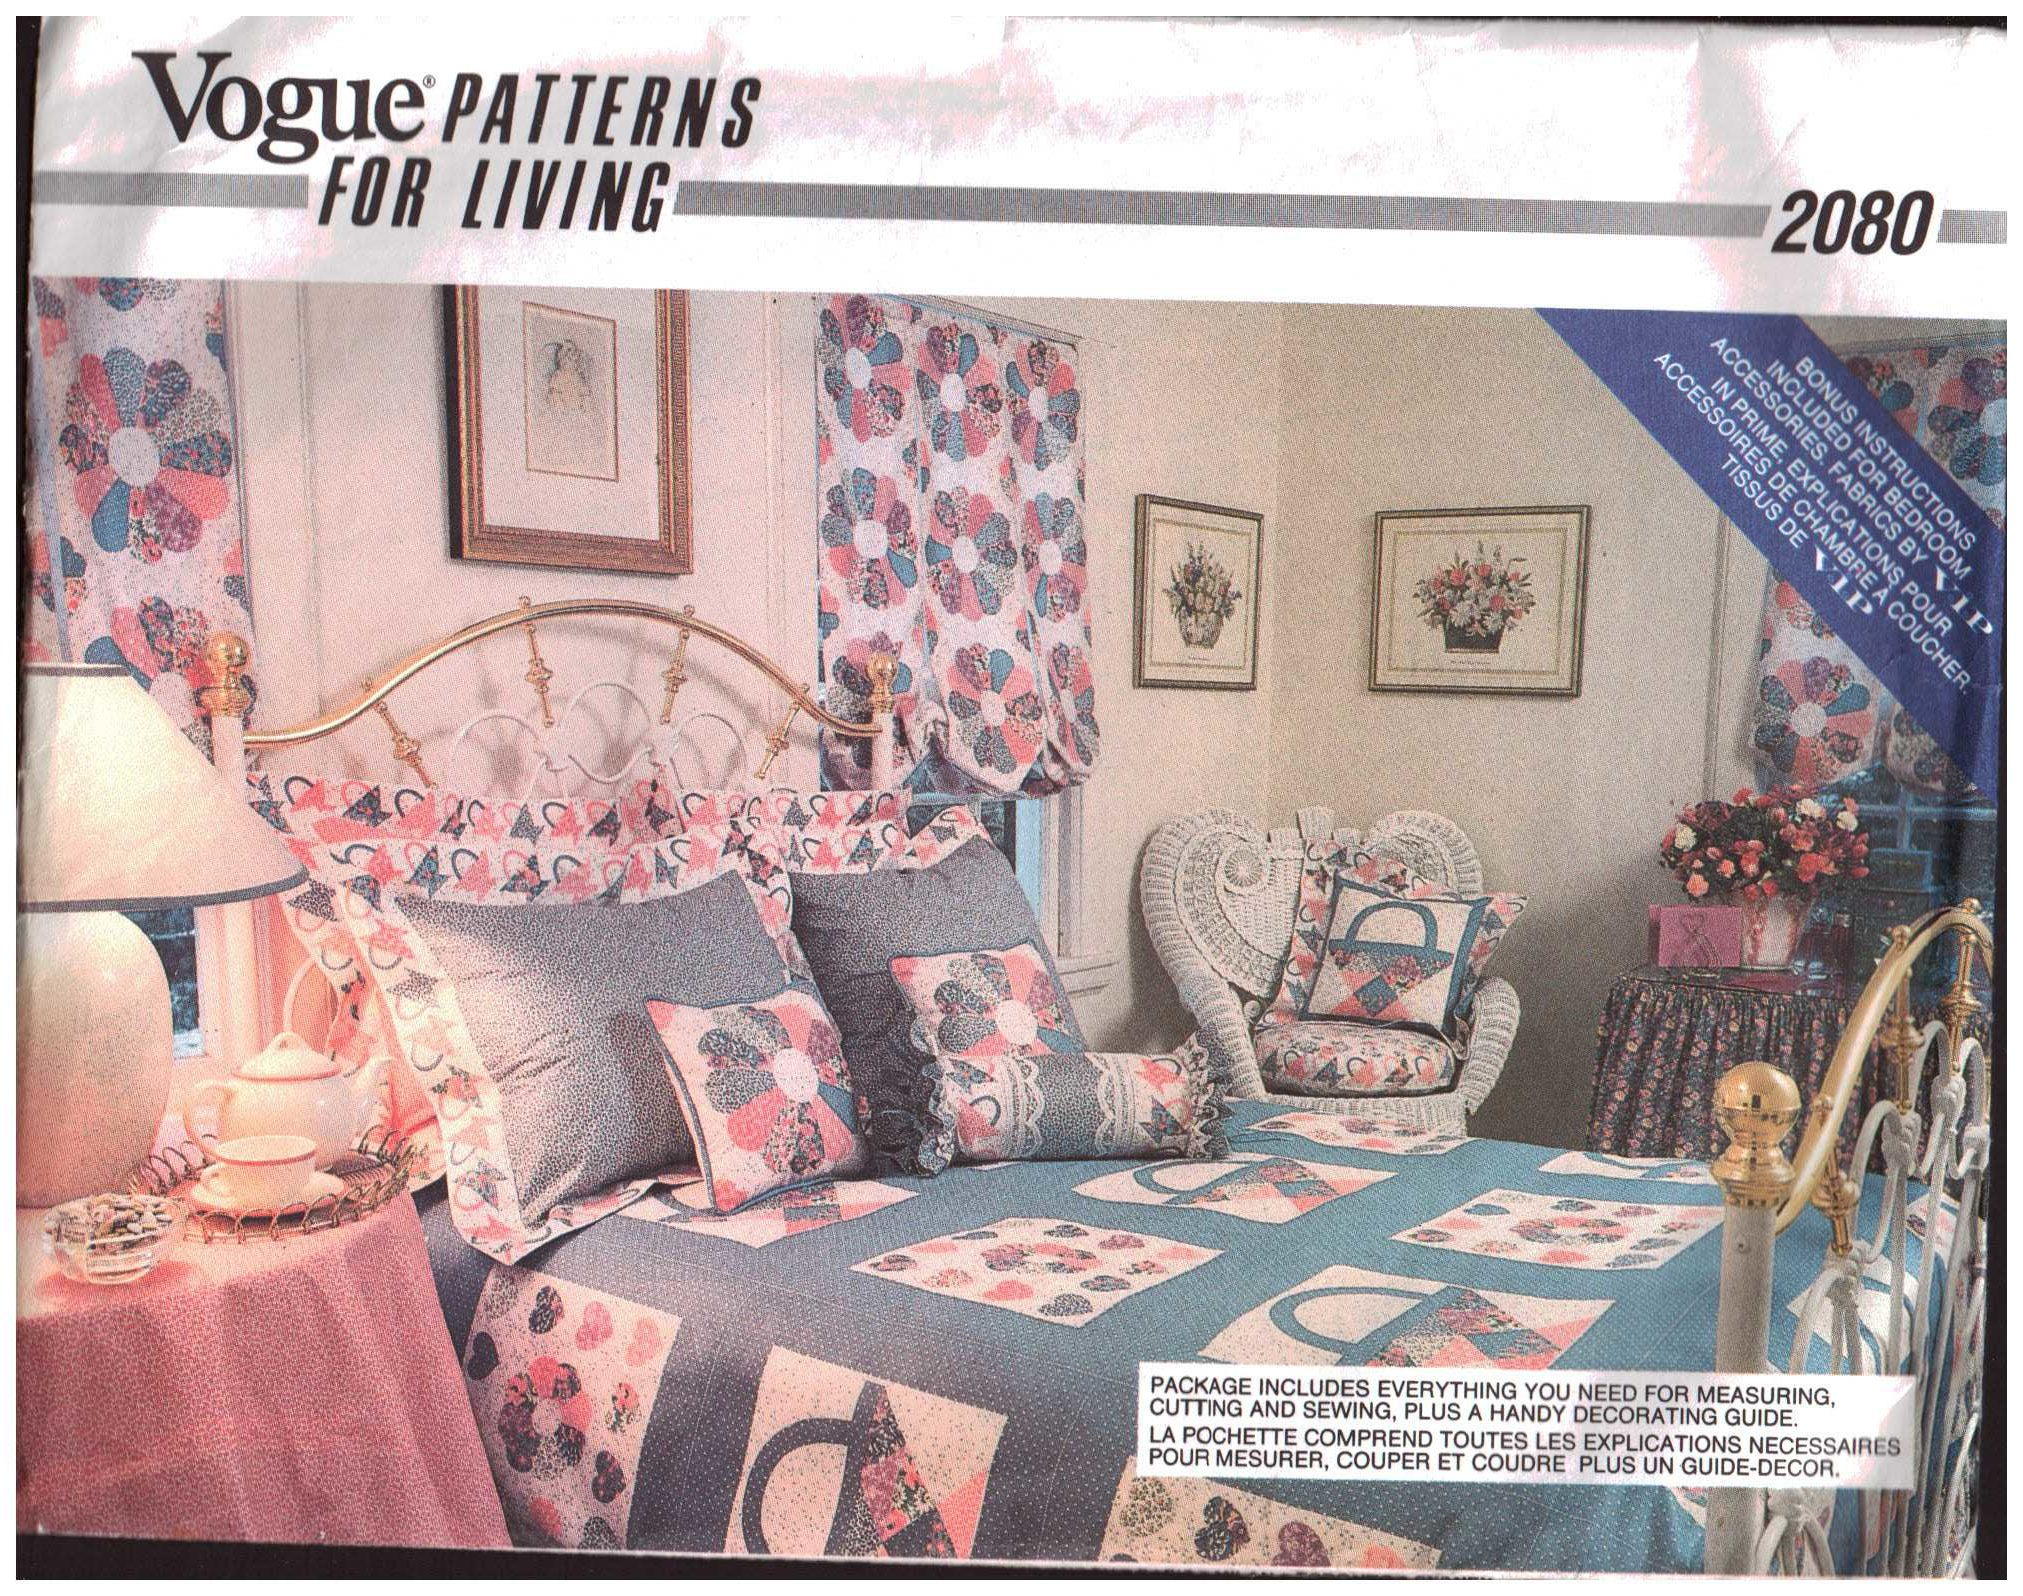 Design Vip Chambre De Bebe Bedrooms Sewing Patterns Archives Page 2 Of 3 Pattern Walk